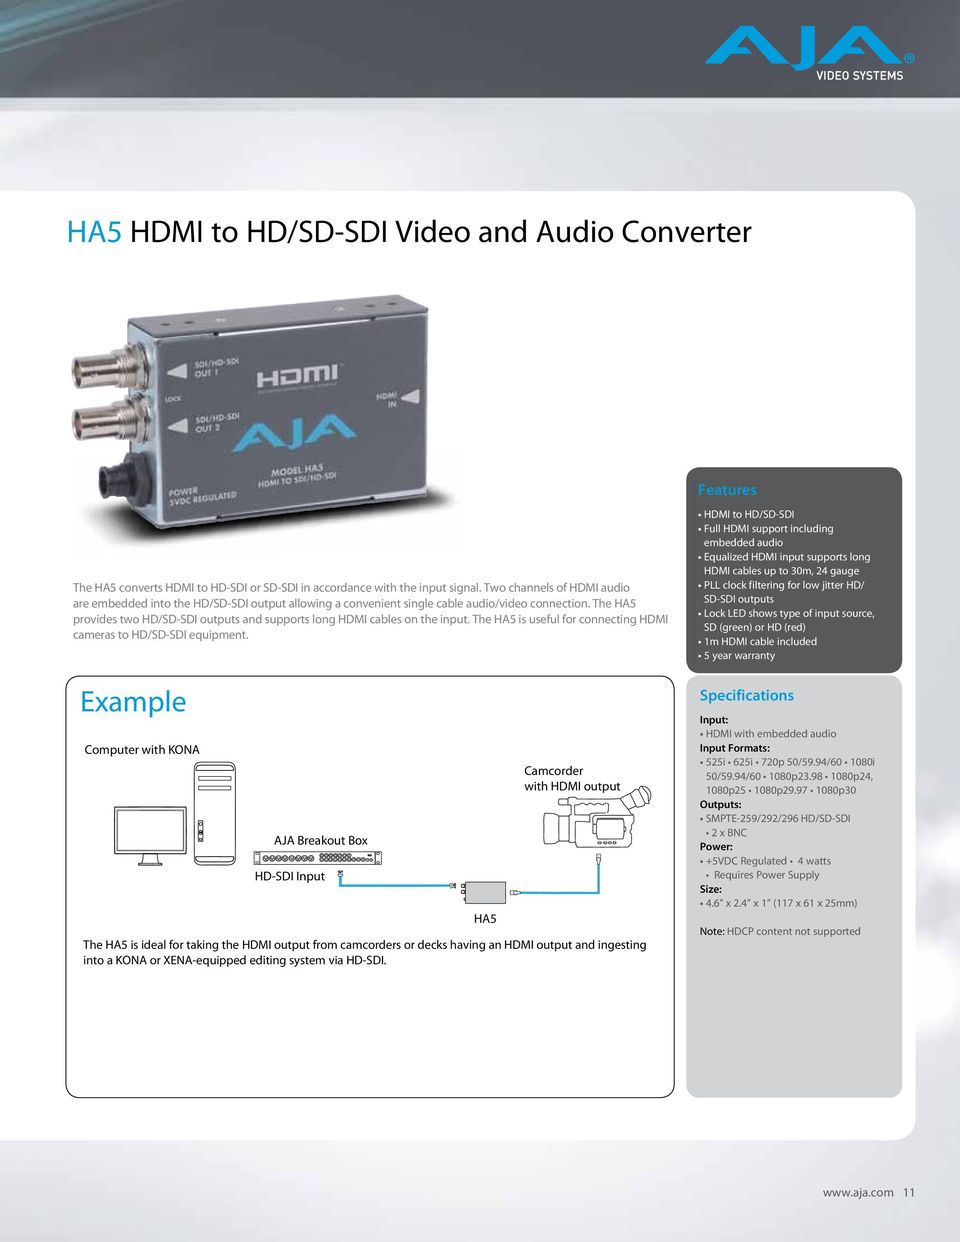 The HA5 provides two HD/SD-SDI outputs and supports long HDMI cables on the input. The HA5 is useful for connecting HDMI cameras to HD/SD-SDI equipment.